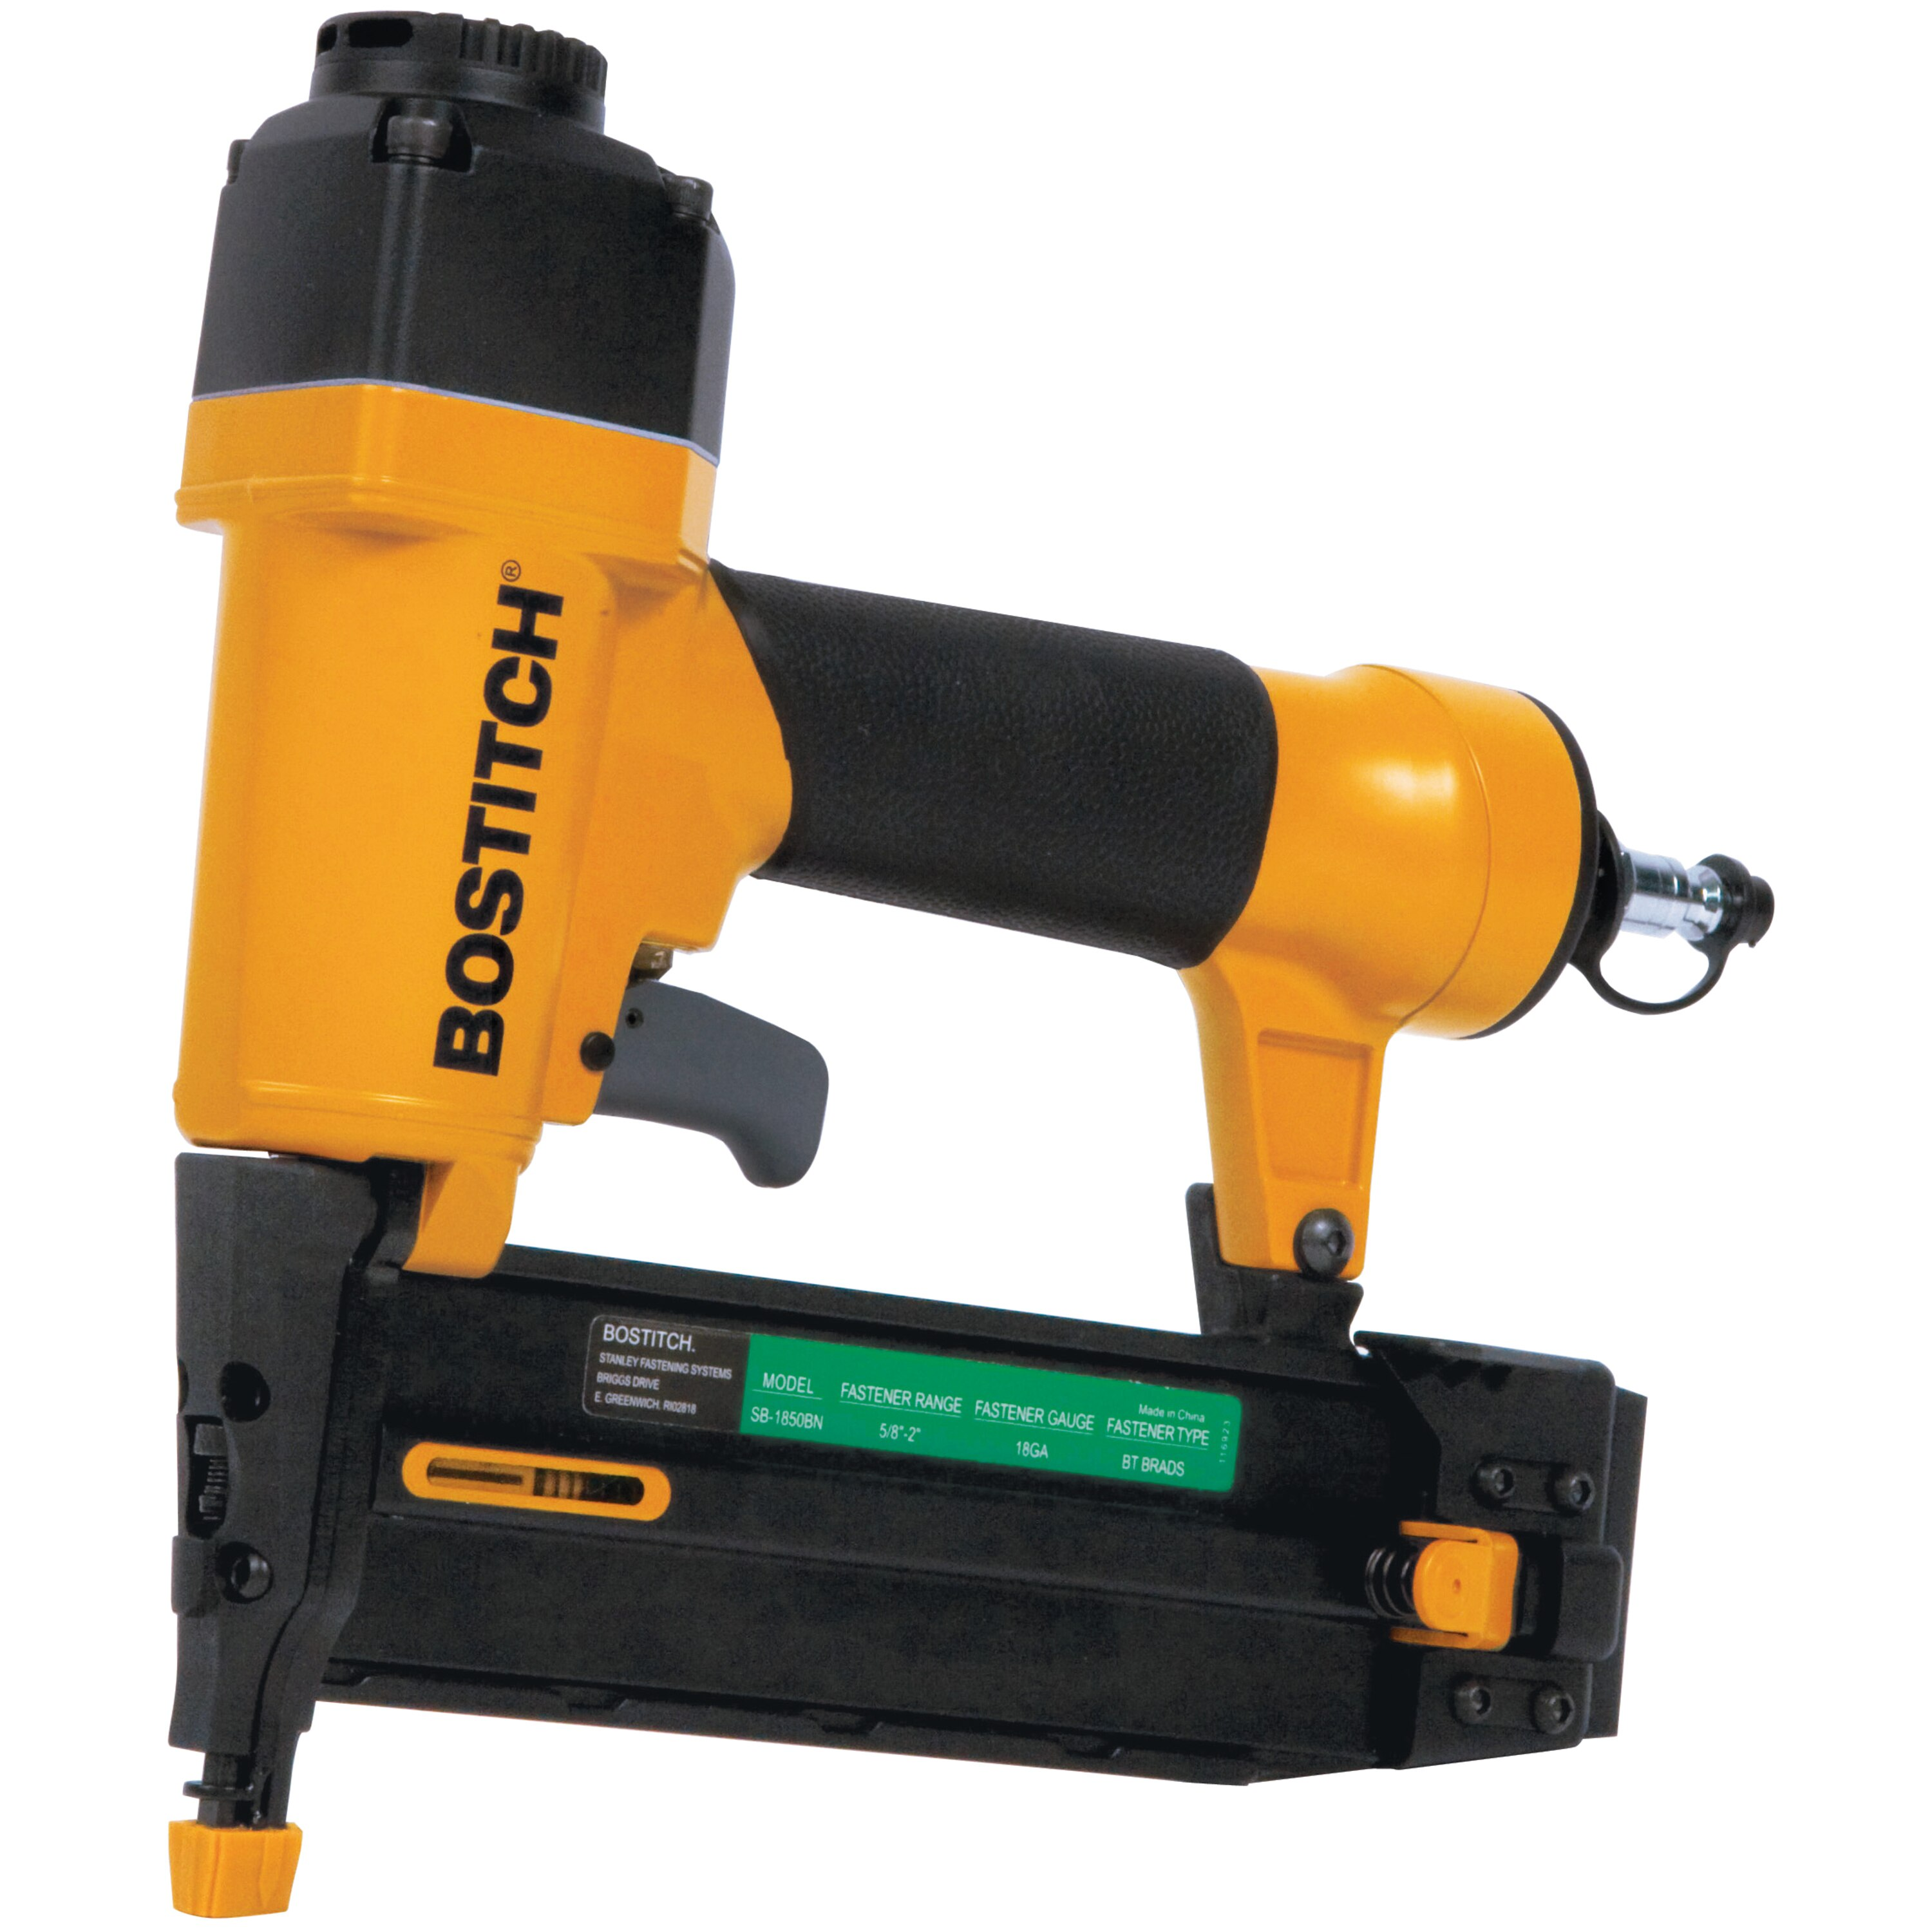 Bostitch - 2 18Gauge Brad Nailer Kit - SB-1850BN